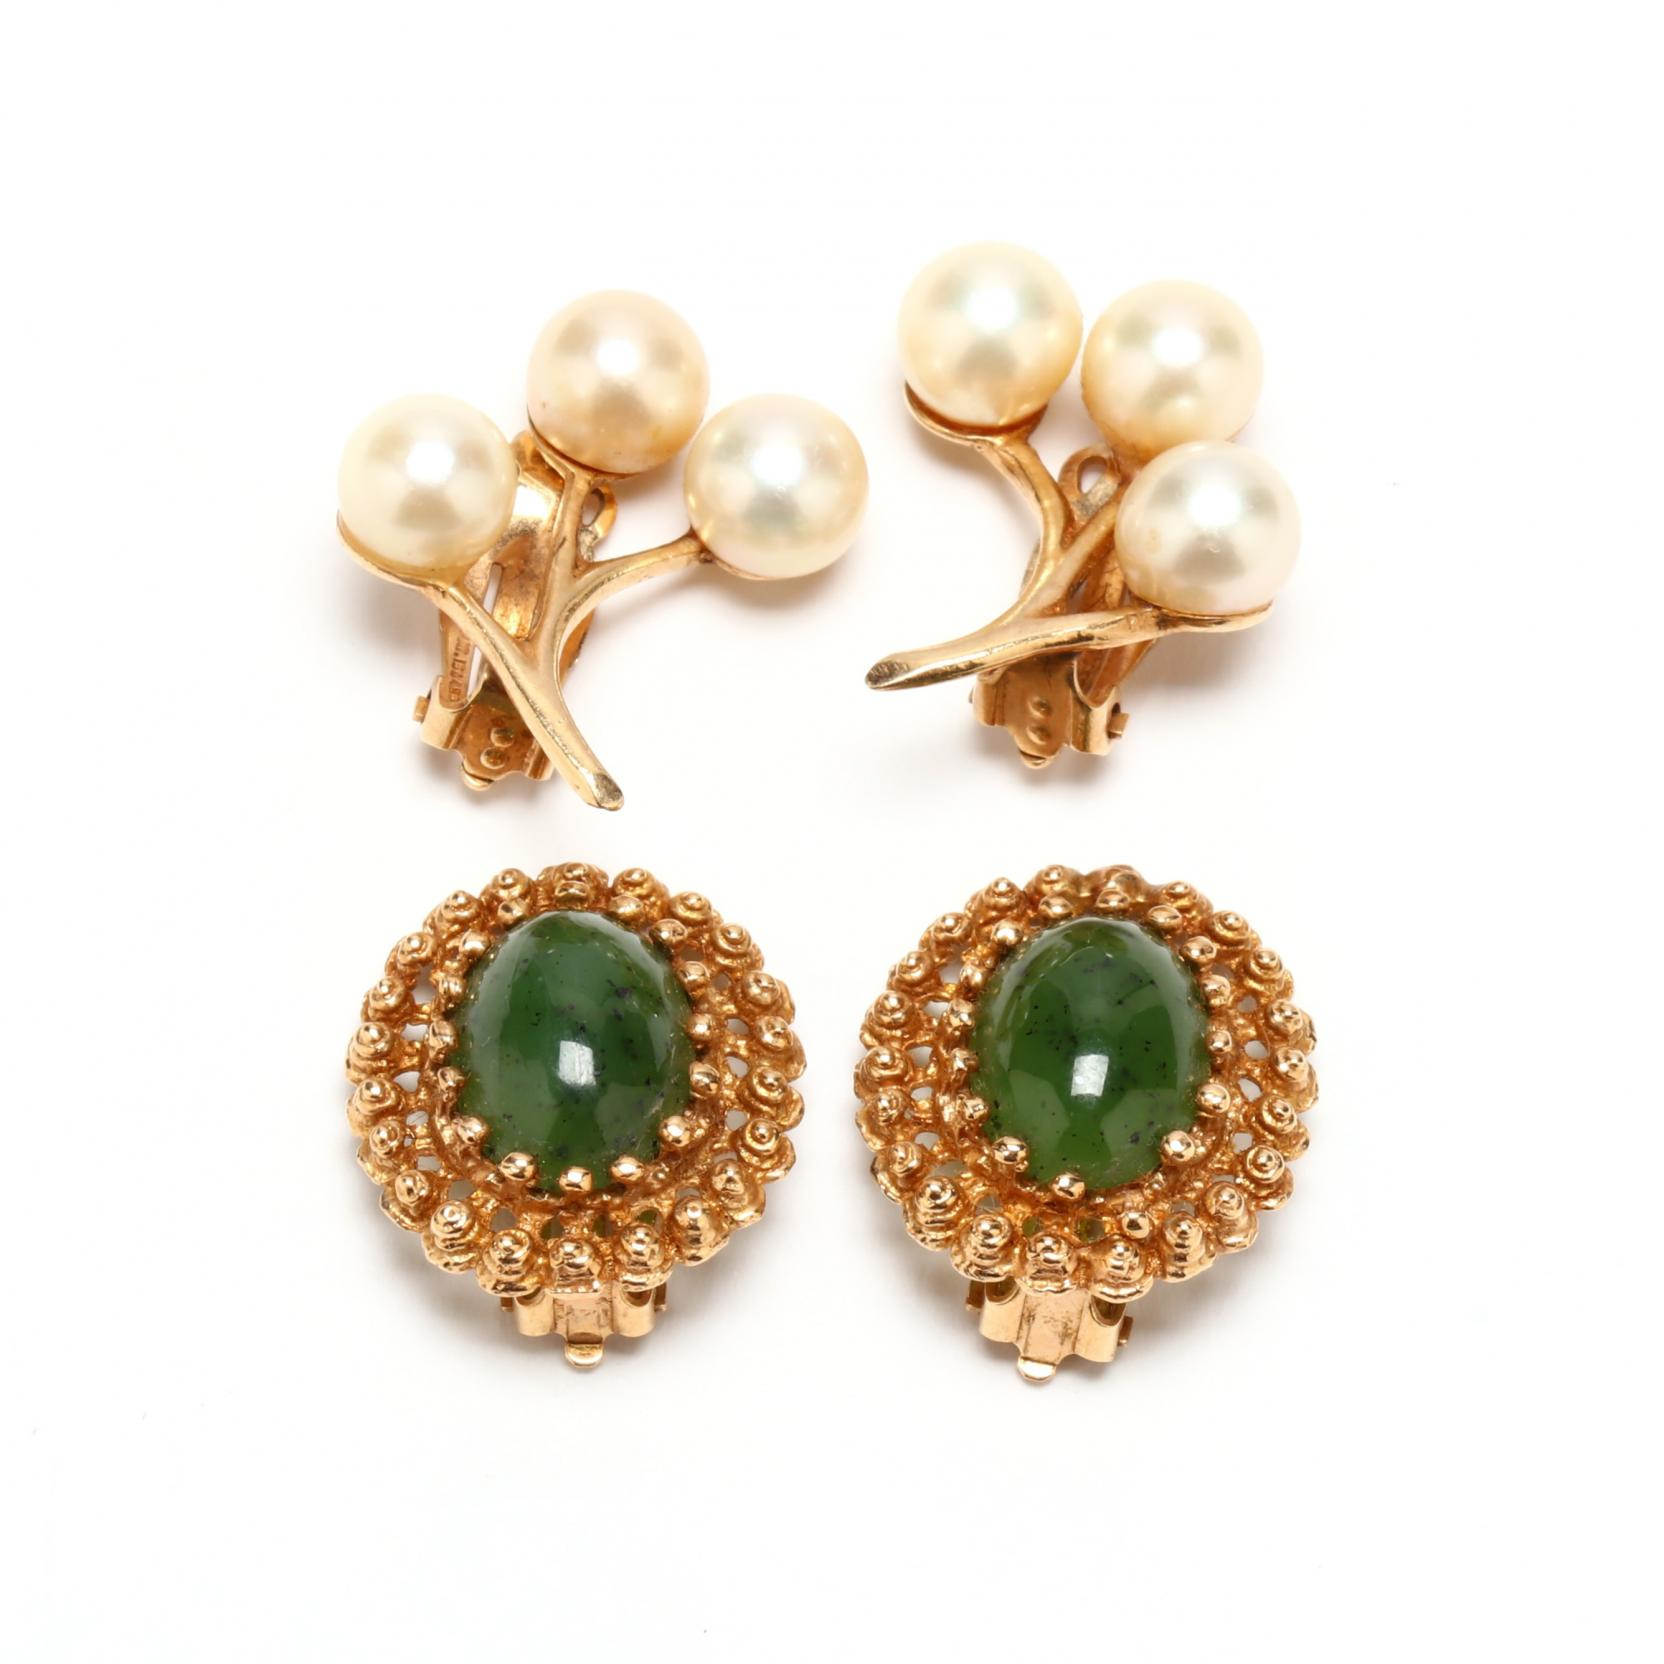 two-pairs-14kt-gold-ear-clips